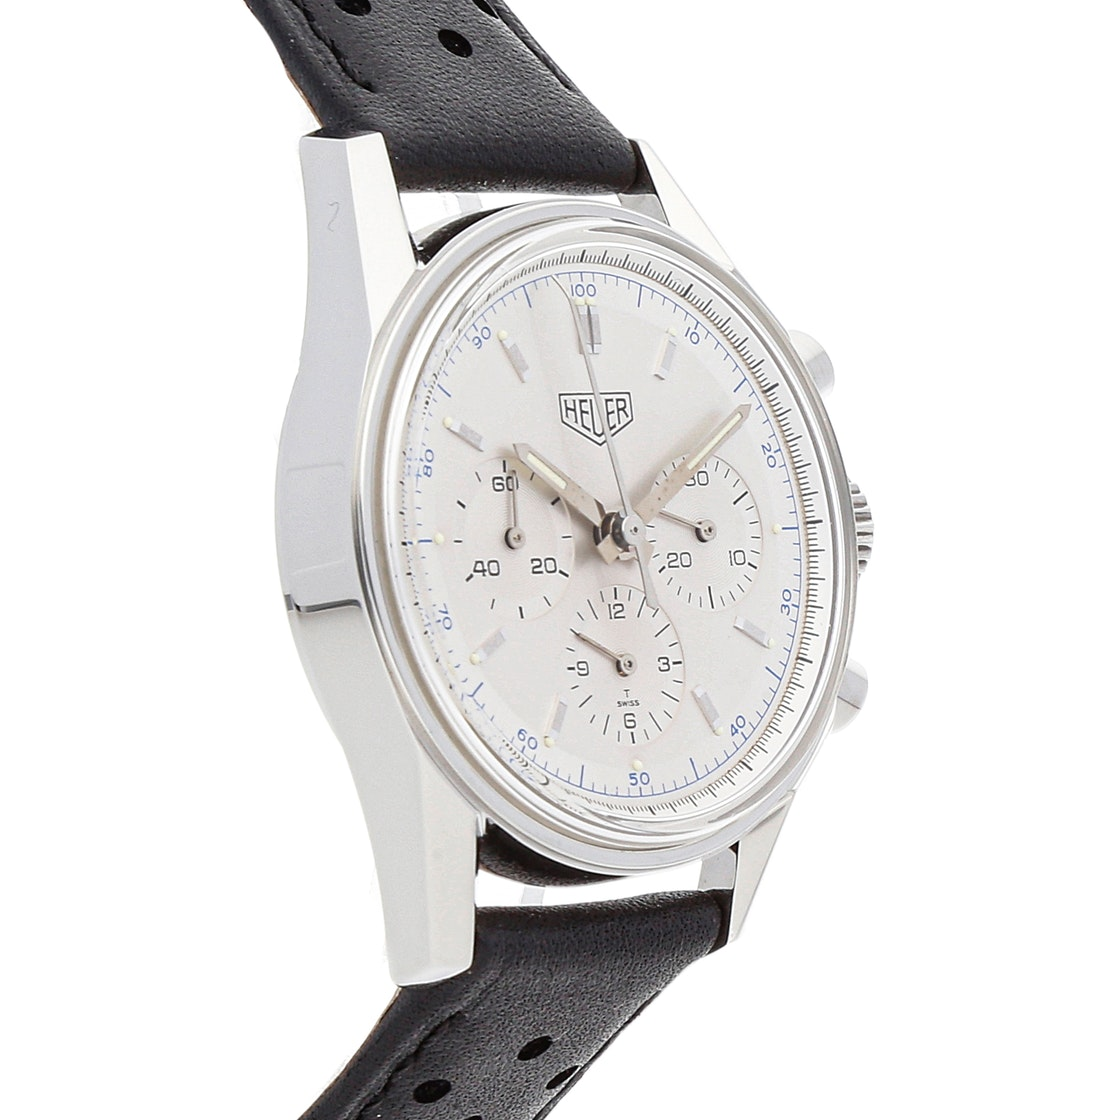 Tag Heuer Carrera Chronograph 1964 Re-Edition CS3110 BC0725